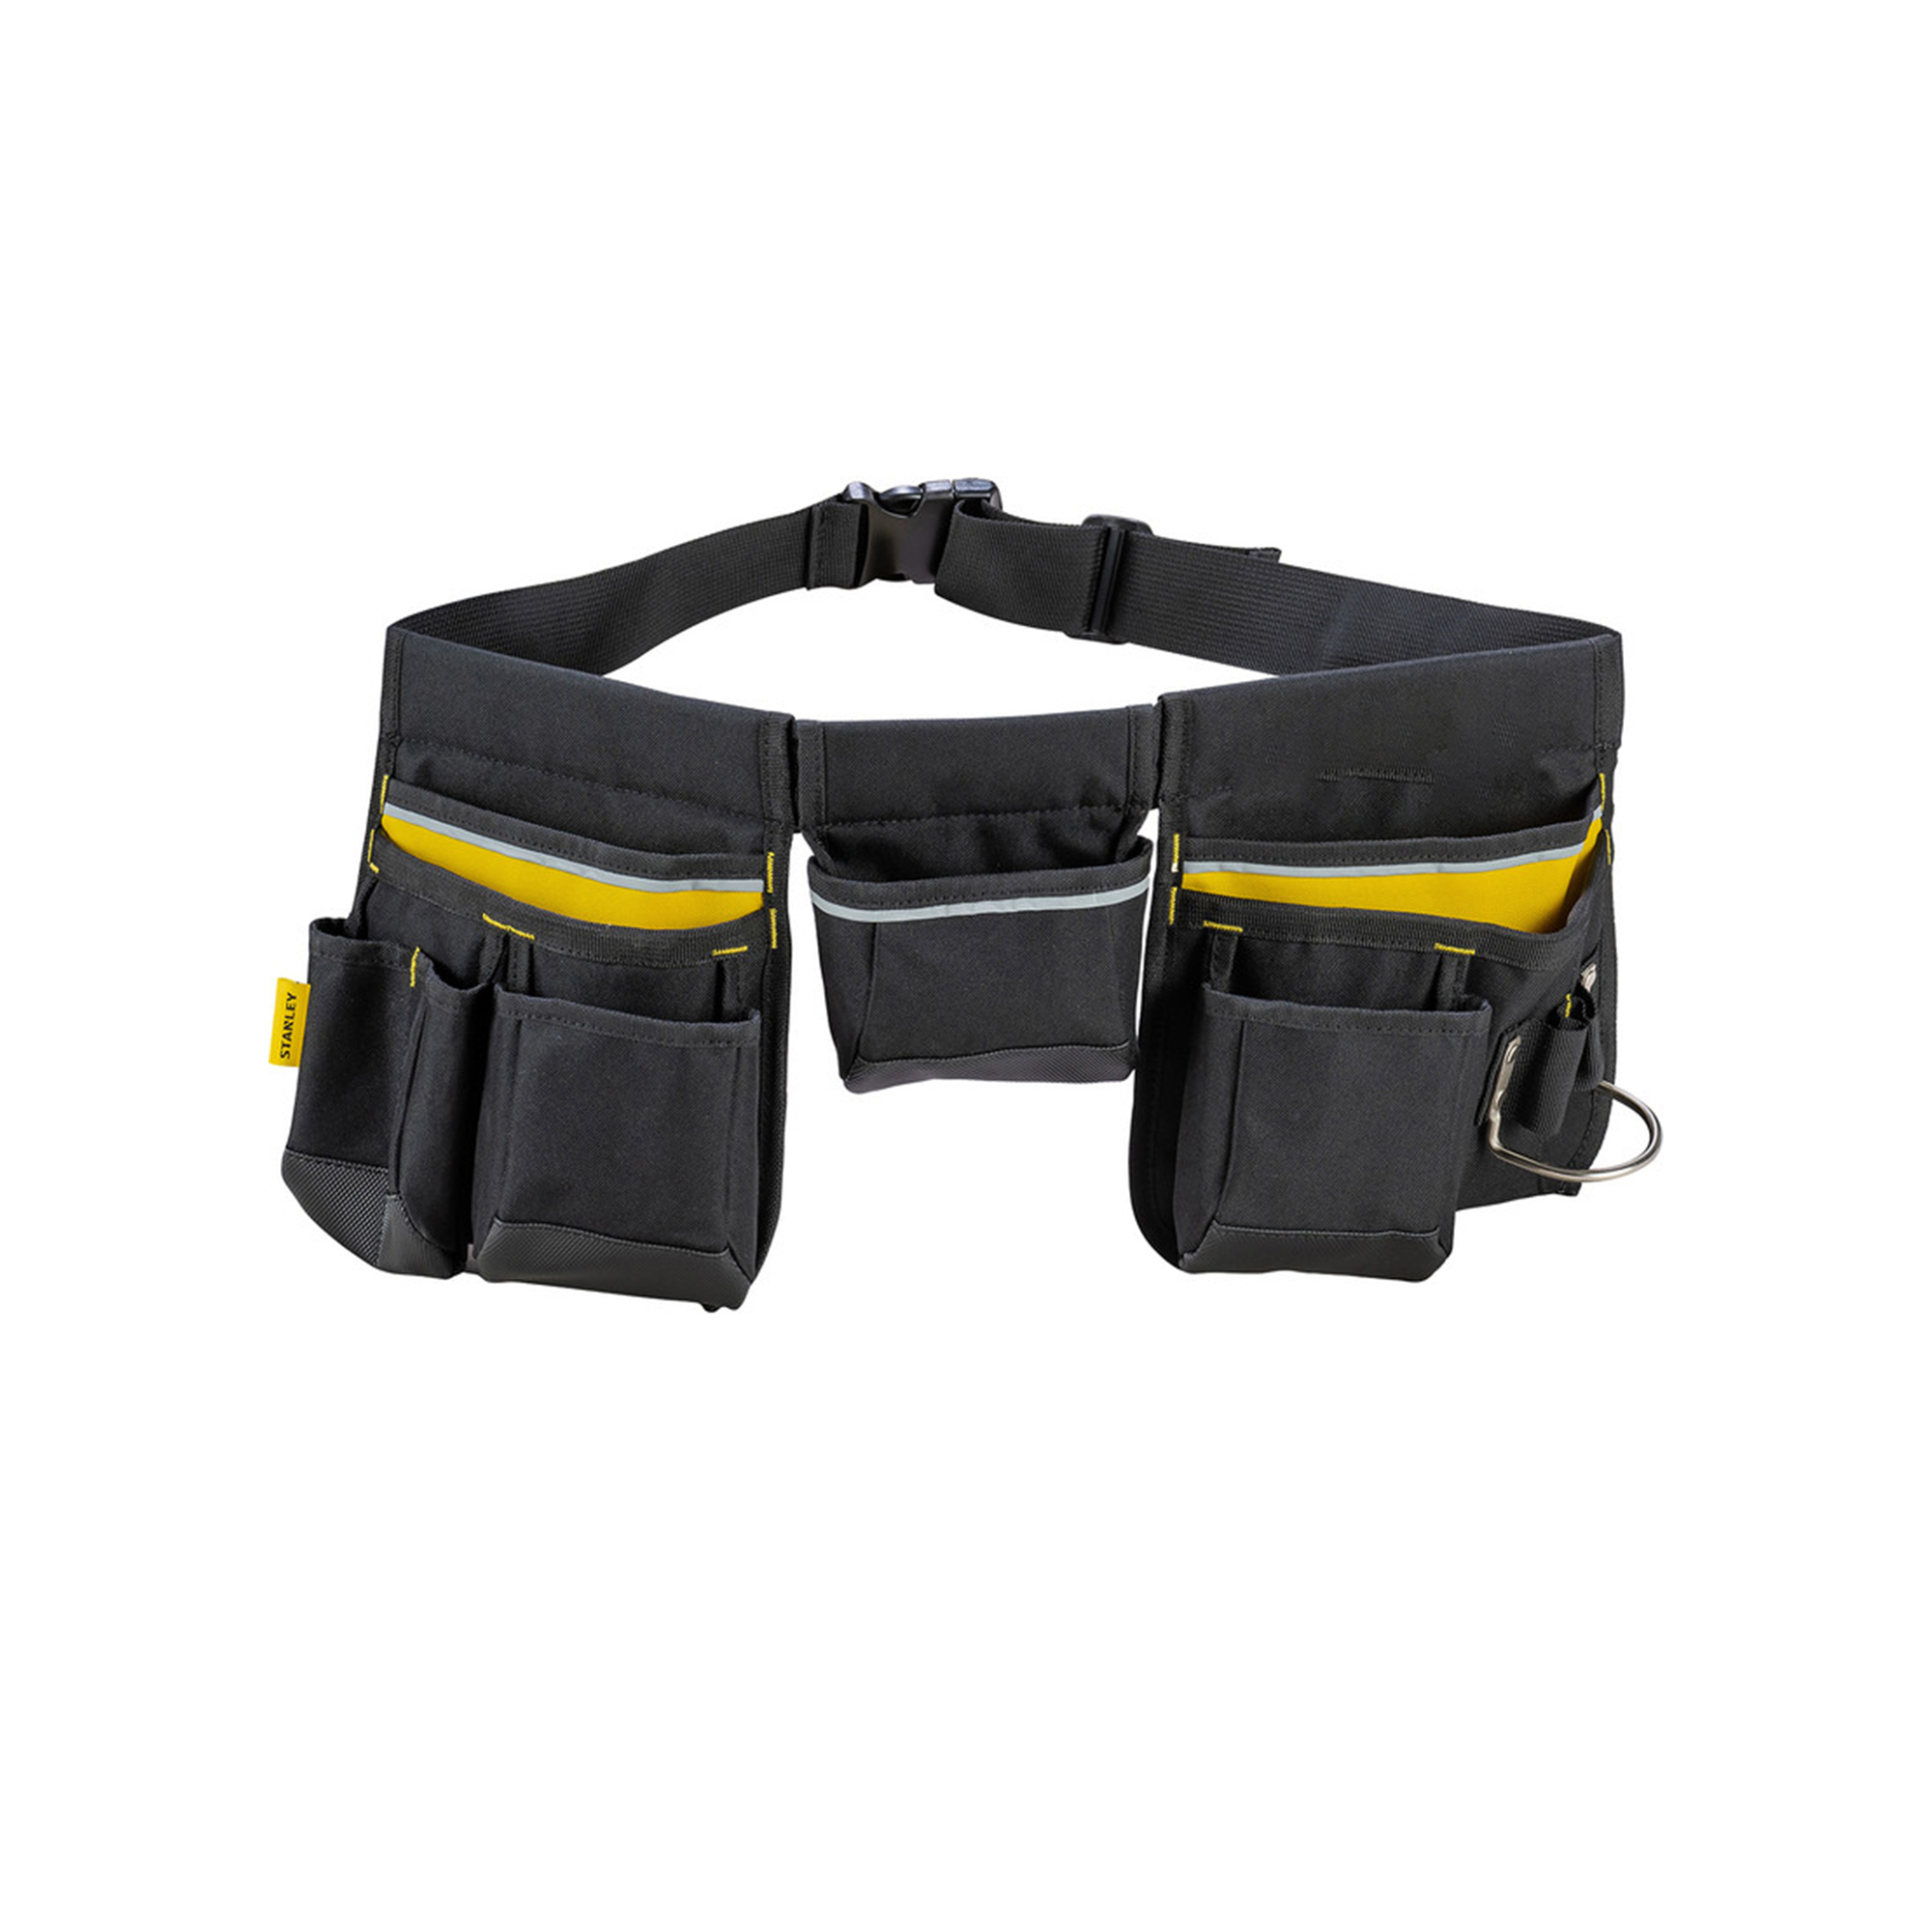 Tool Belts, Pouches & Accessories